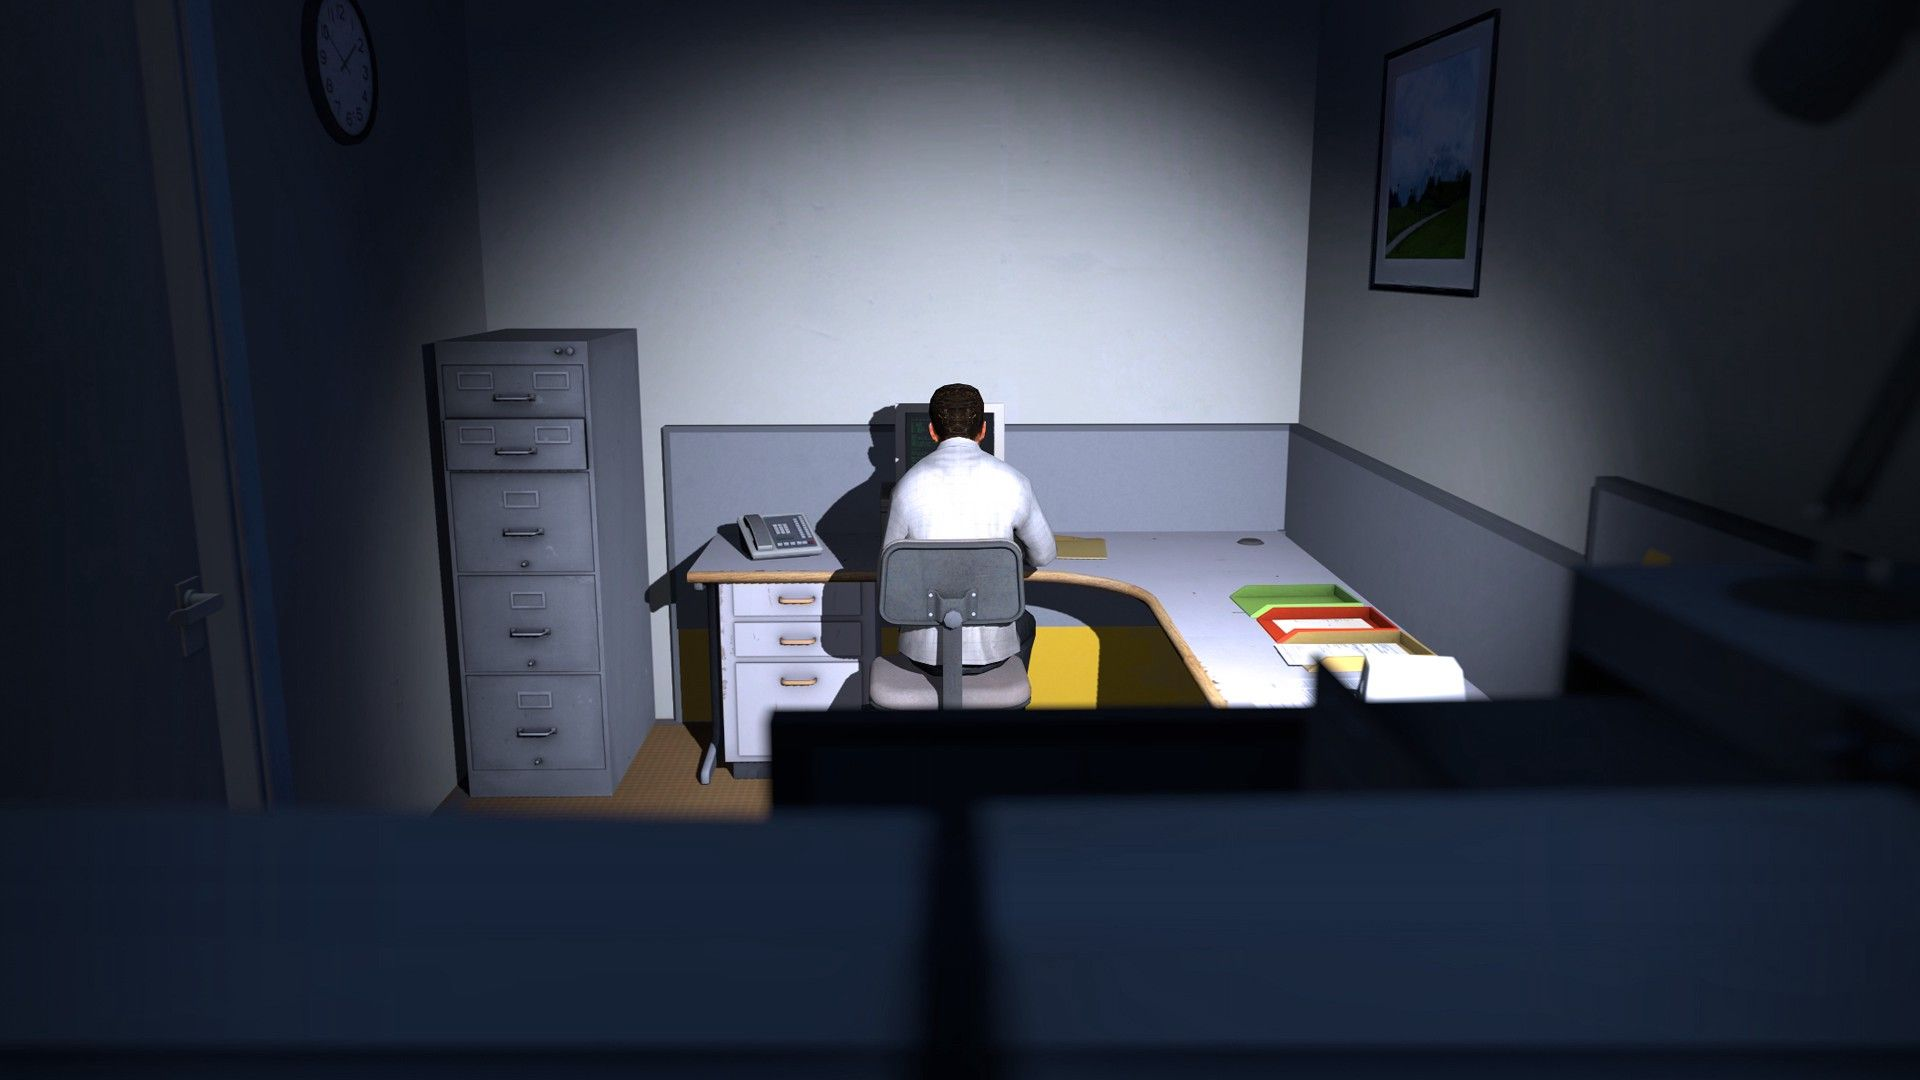 """Image from """"The Stanley Parable"""" by Galactic Cafe (CC BY-SA 3.0)"""